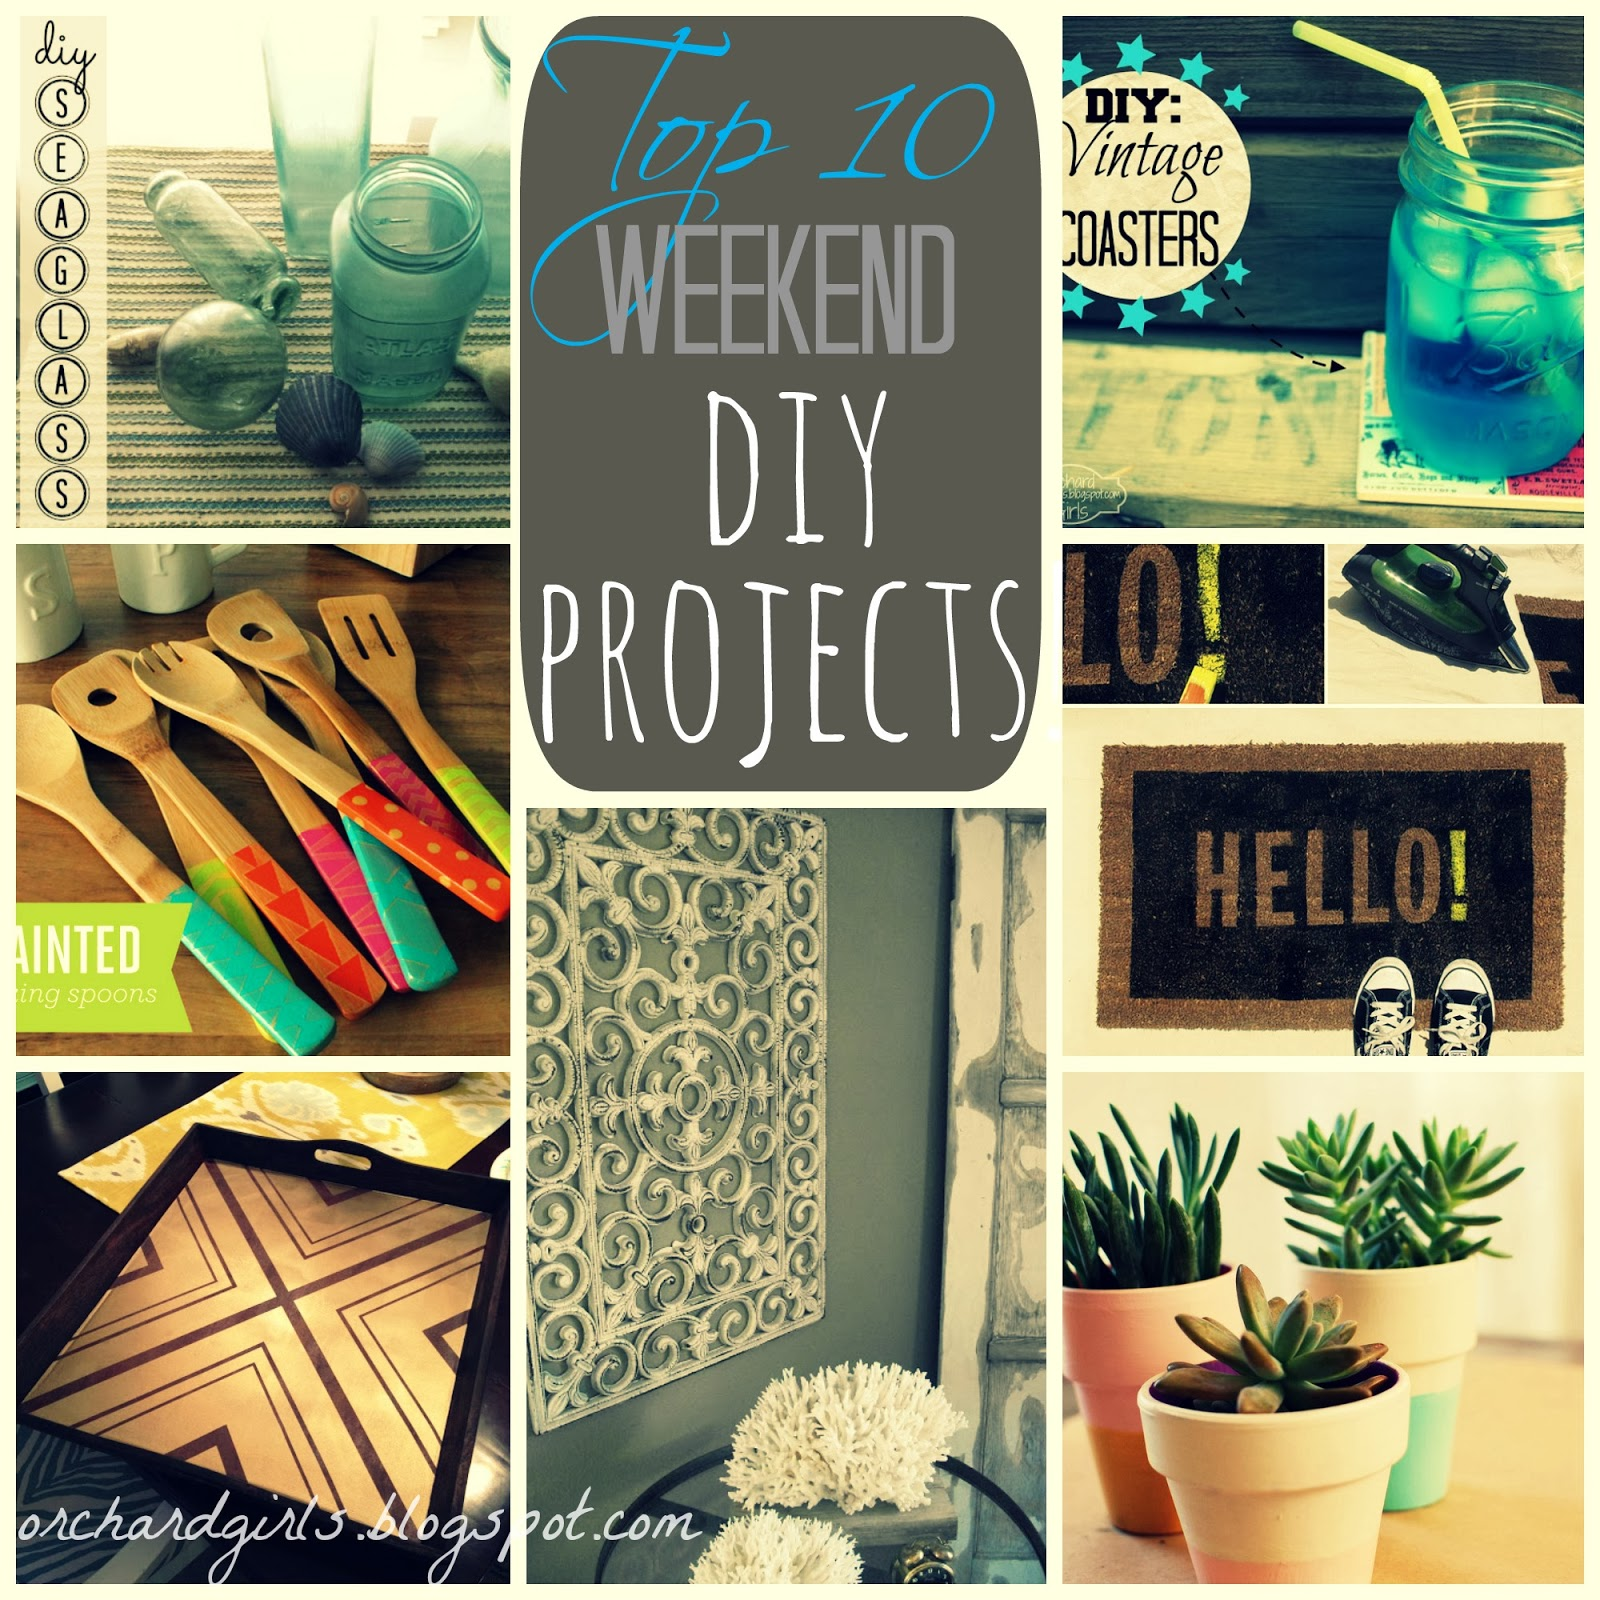 Top 10 Weekend Diy Projects